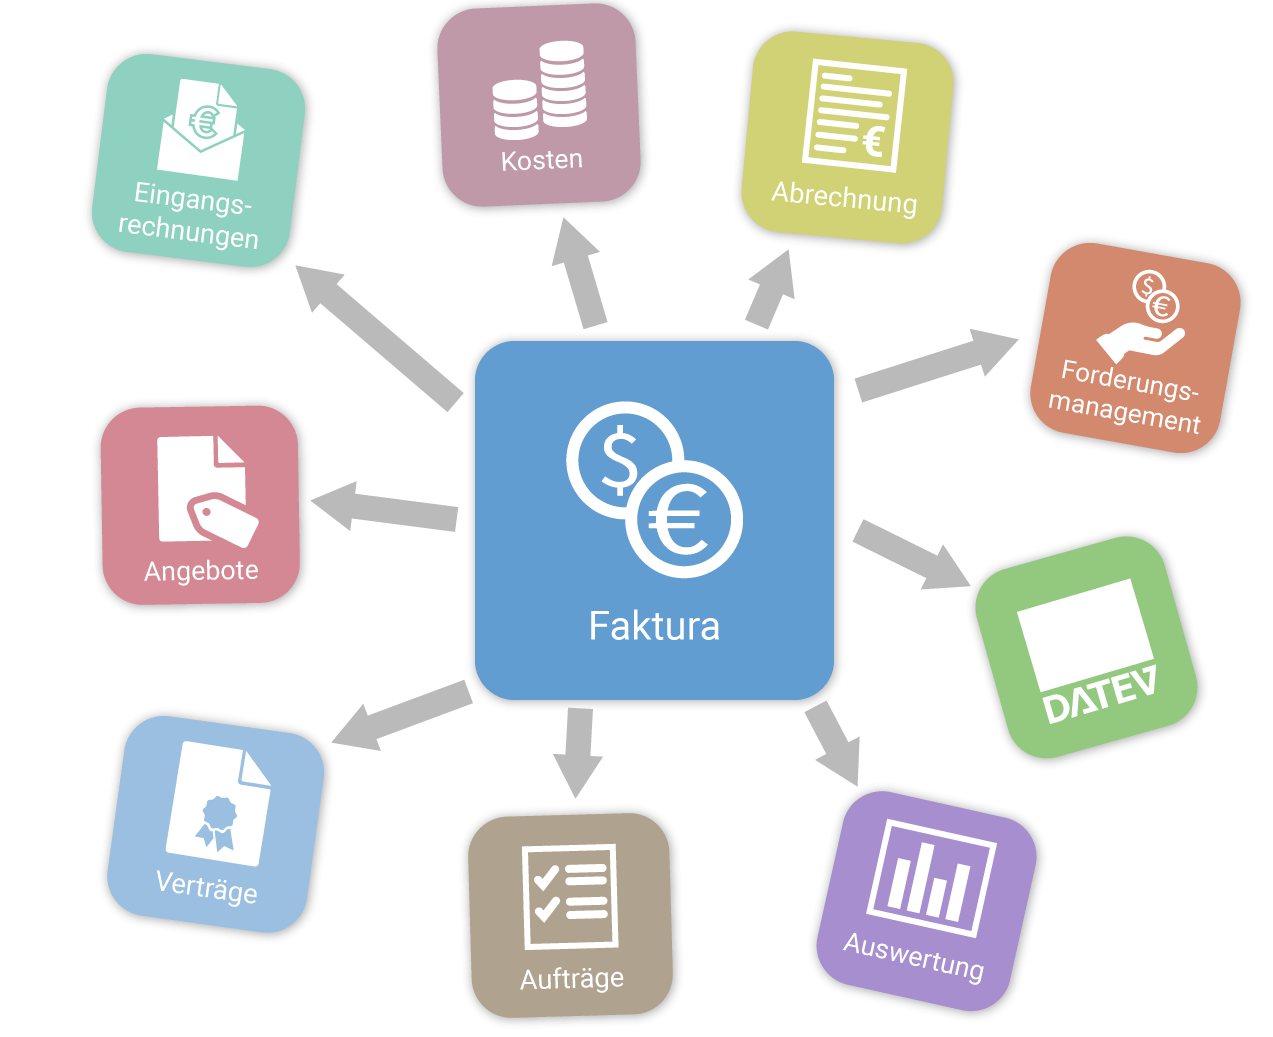 Faktura in projectfacts